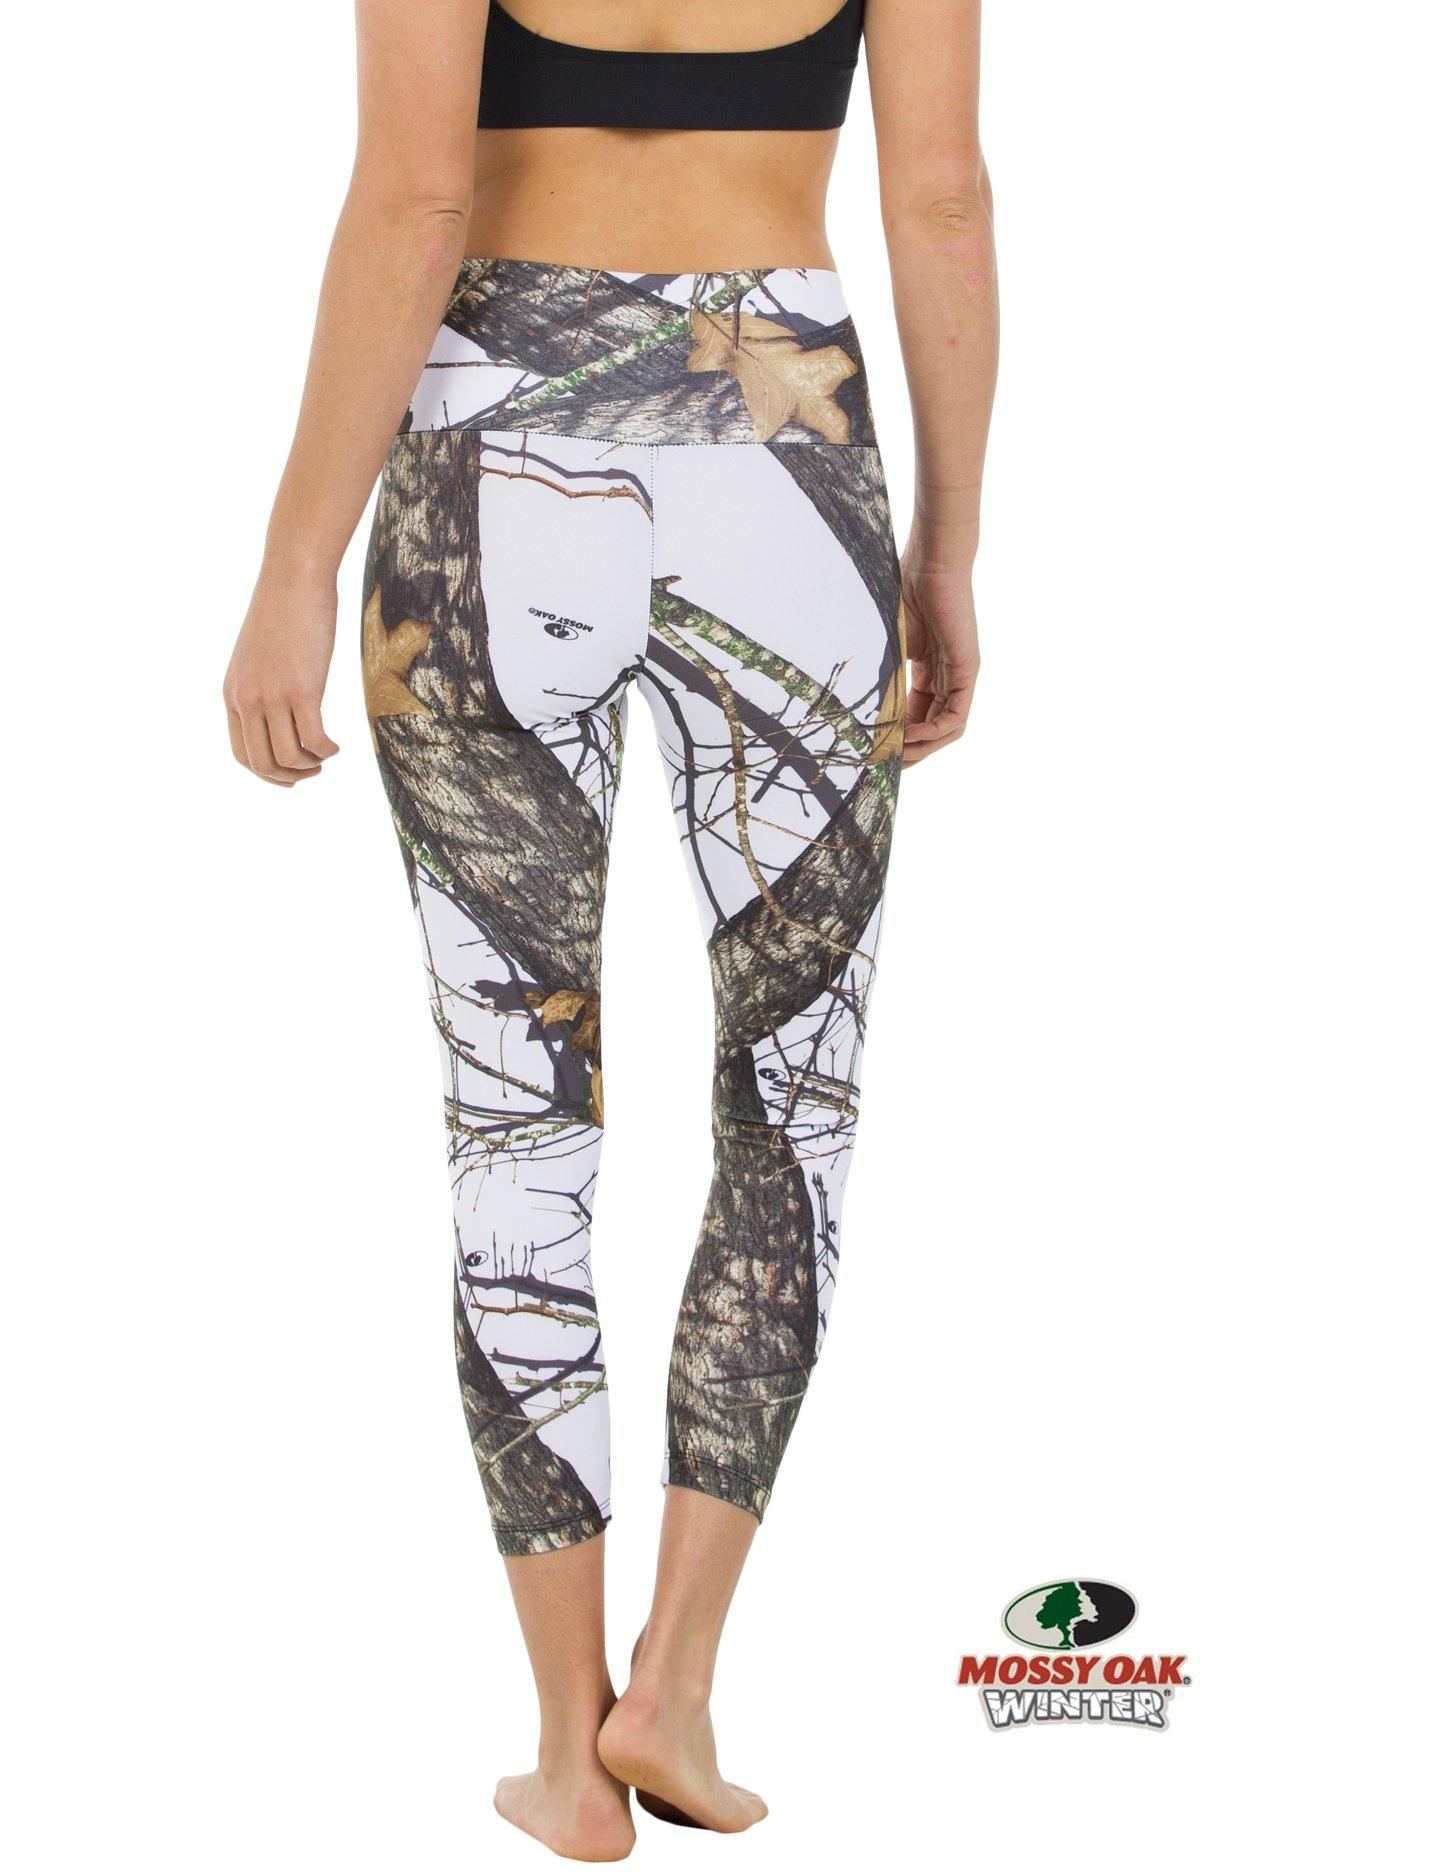 Apsara Leggings High Waist Cropped, Mossy Oak Break-Up Winter - Apsara Style